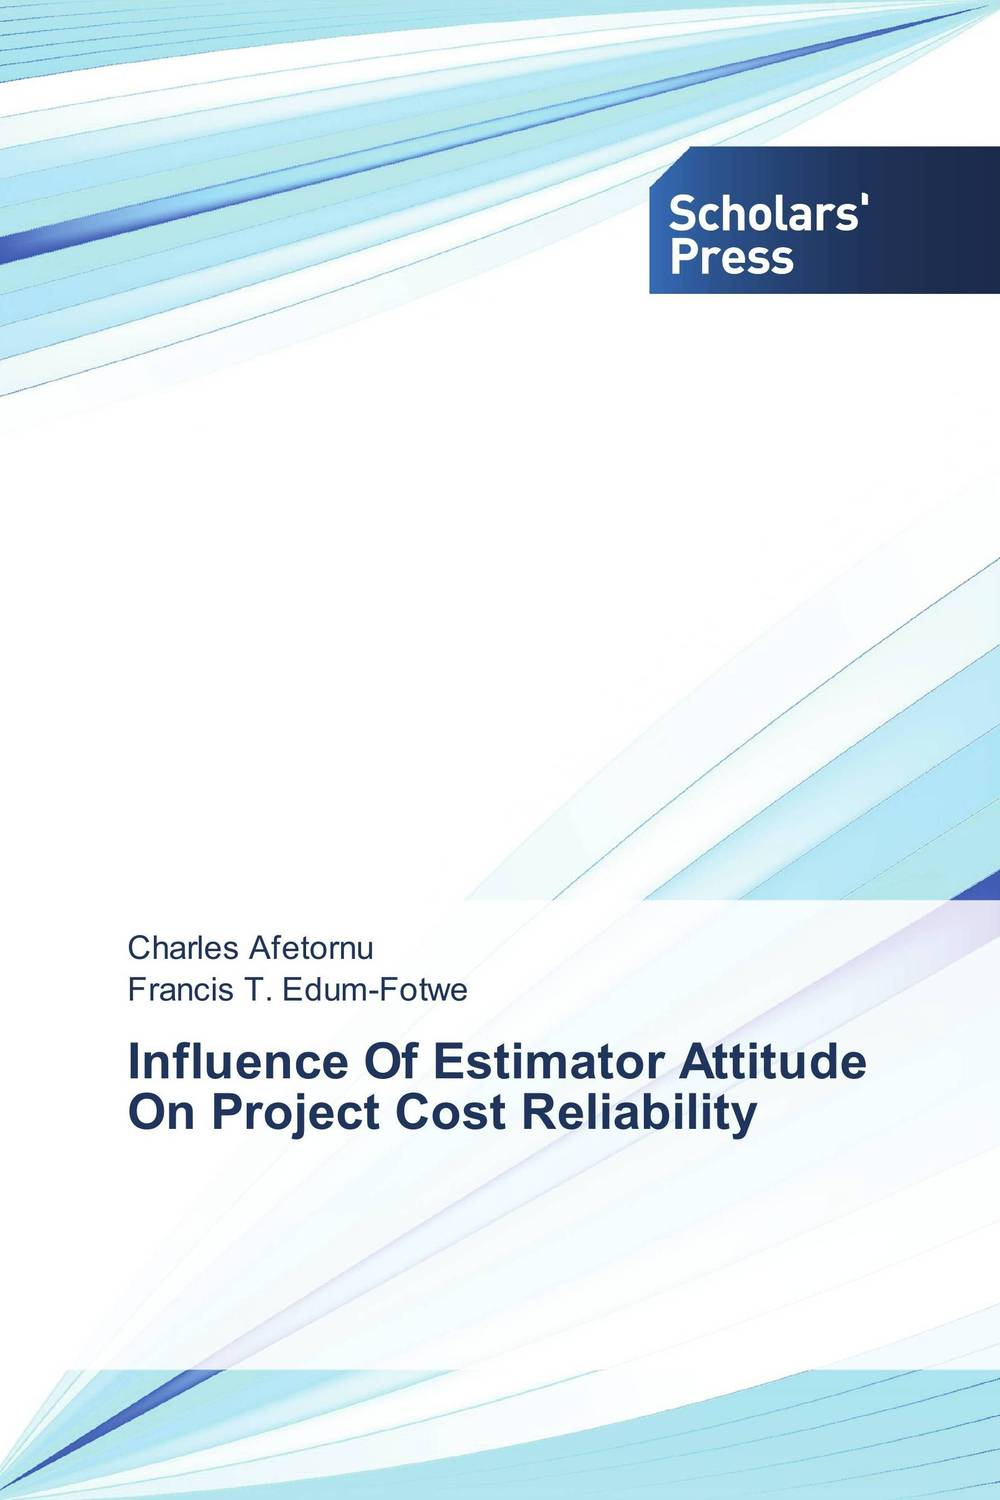 Influence Of Estimator Attitude On Project Cost Reliability